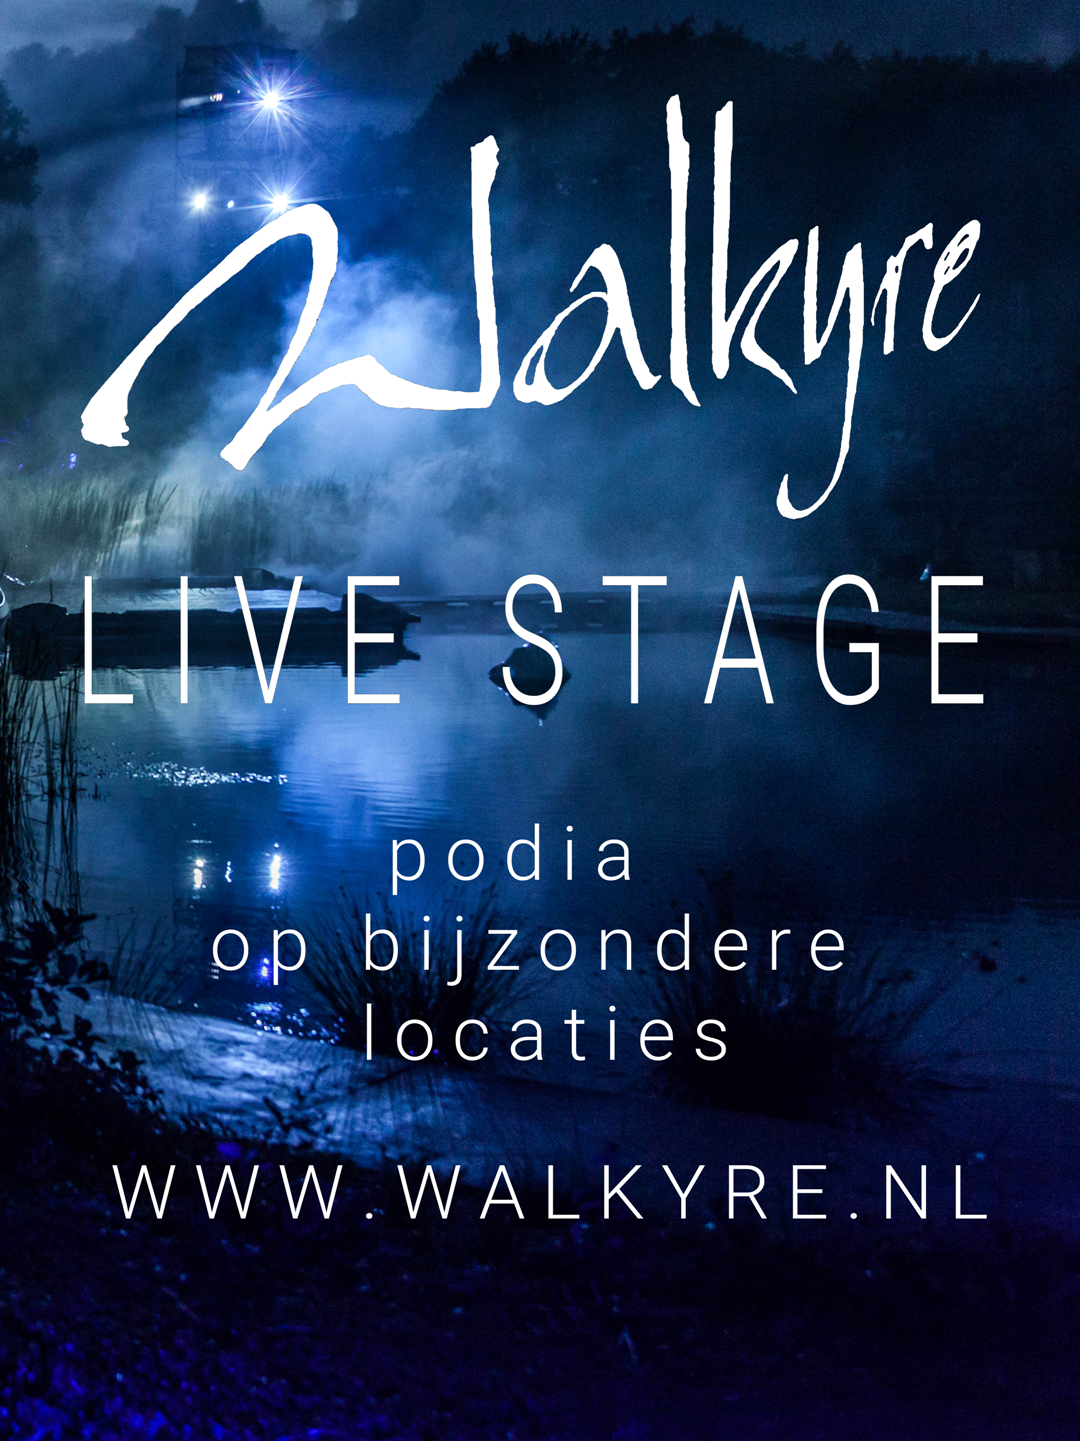 //walkyre.nl/wp-content/uploads/2015/09/POSTER-WEBSITE-KLEINER.png